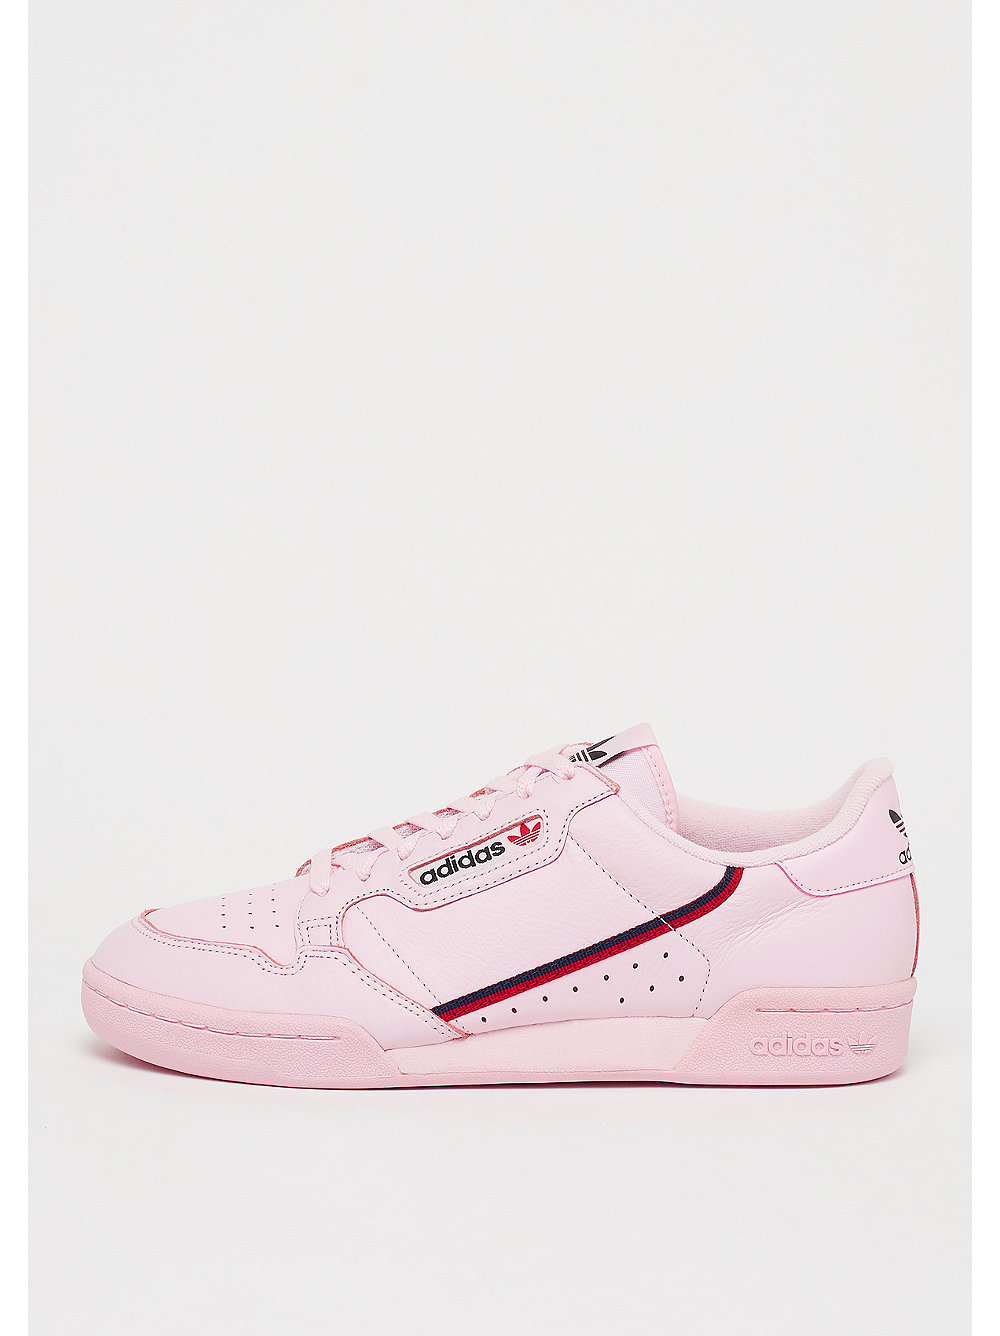 adidas Continental 80 clear pink/scarlet/colleg...